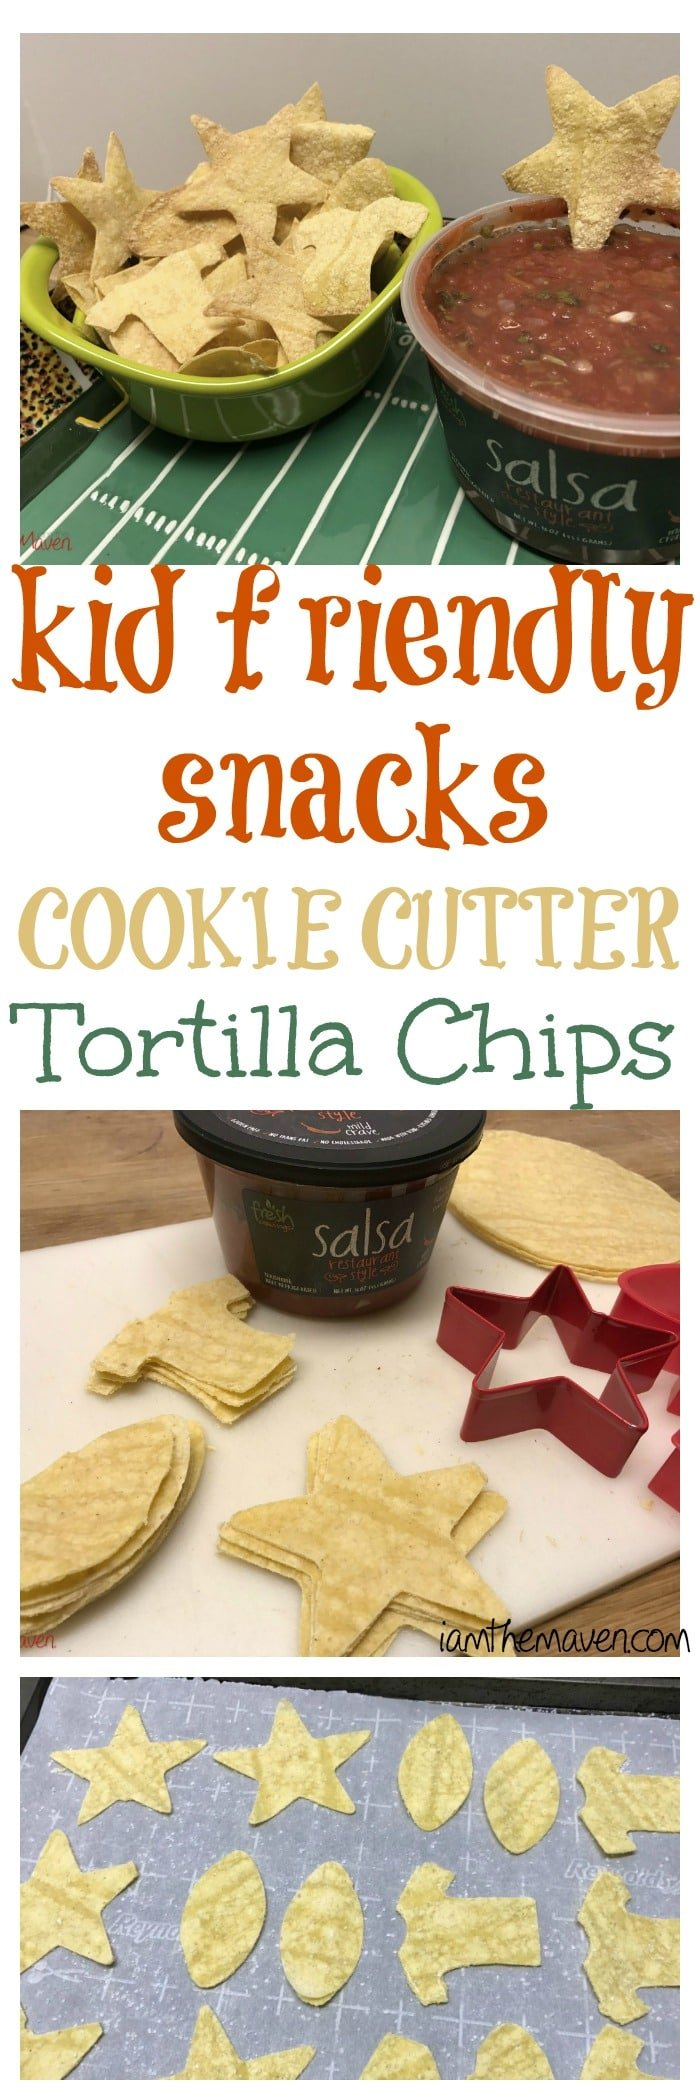 You'll love these kid friendly snacks! Cookie Cutter Tortilla Chips! Pair them with salsa for a new family favorite!